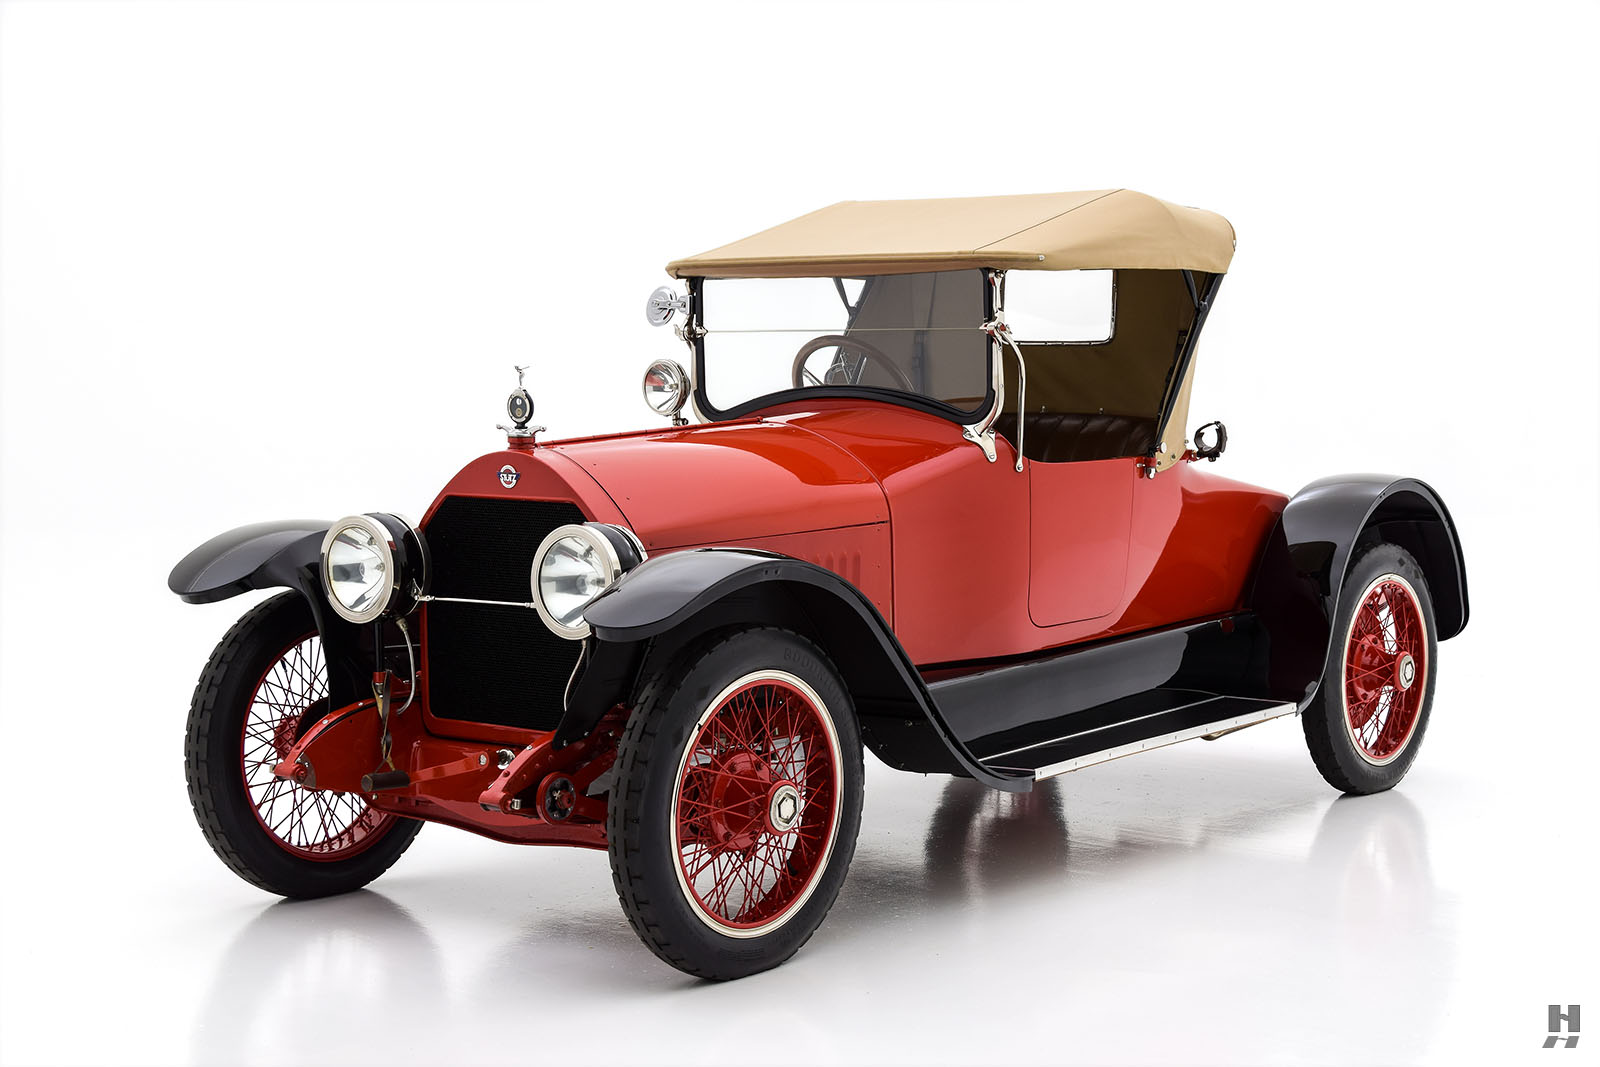 1920 Stutz Series H Roadster For Sale   Classic Cars ...